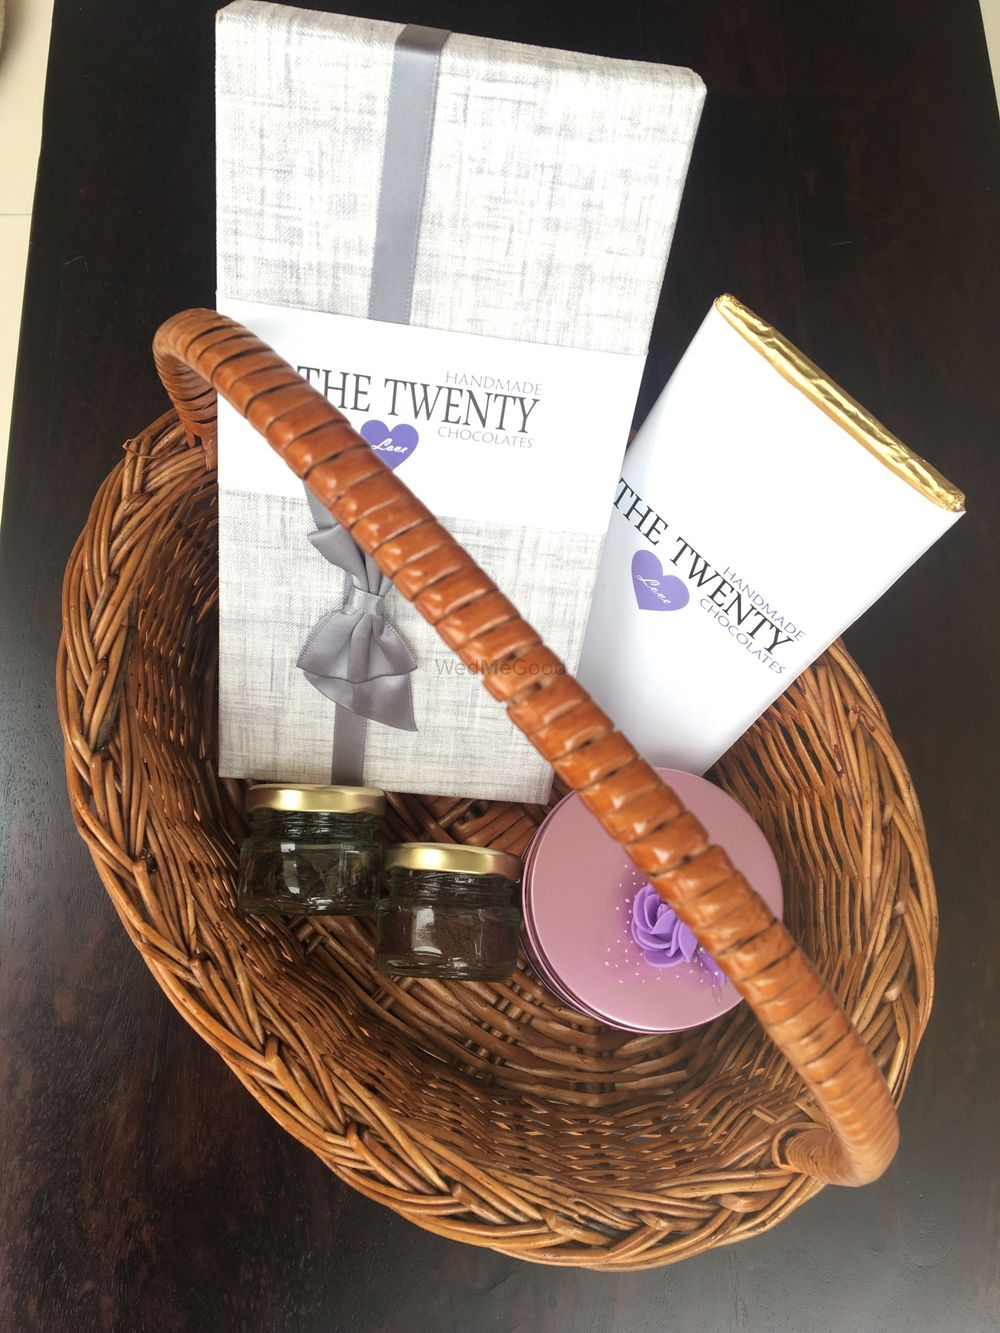 Photo From Return Gifts  - By The Twenty Hampers